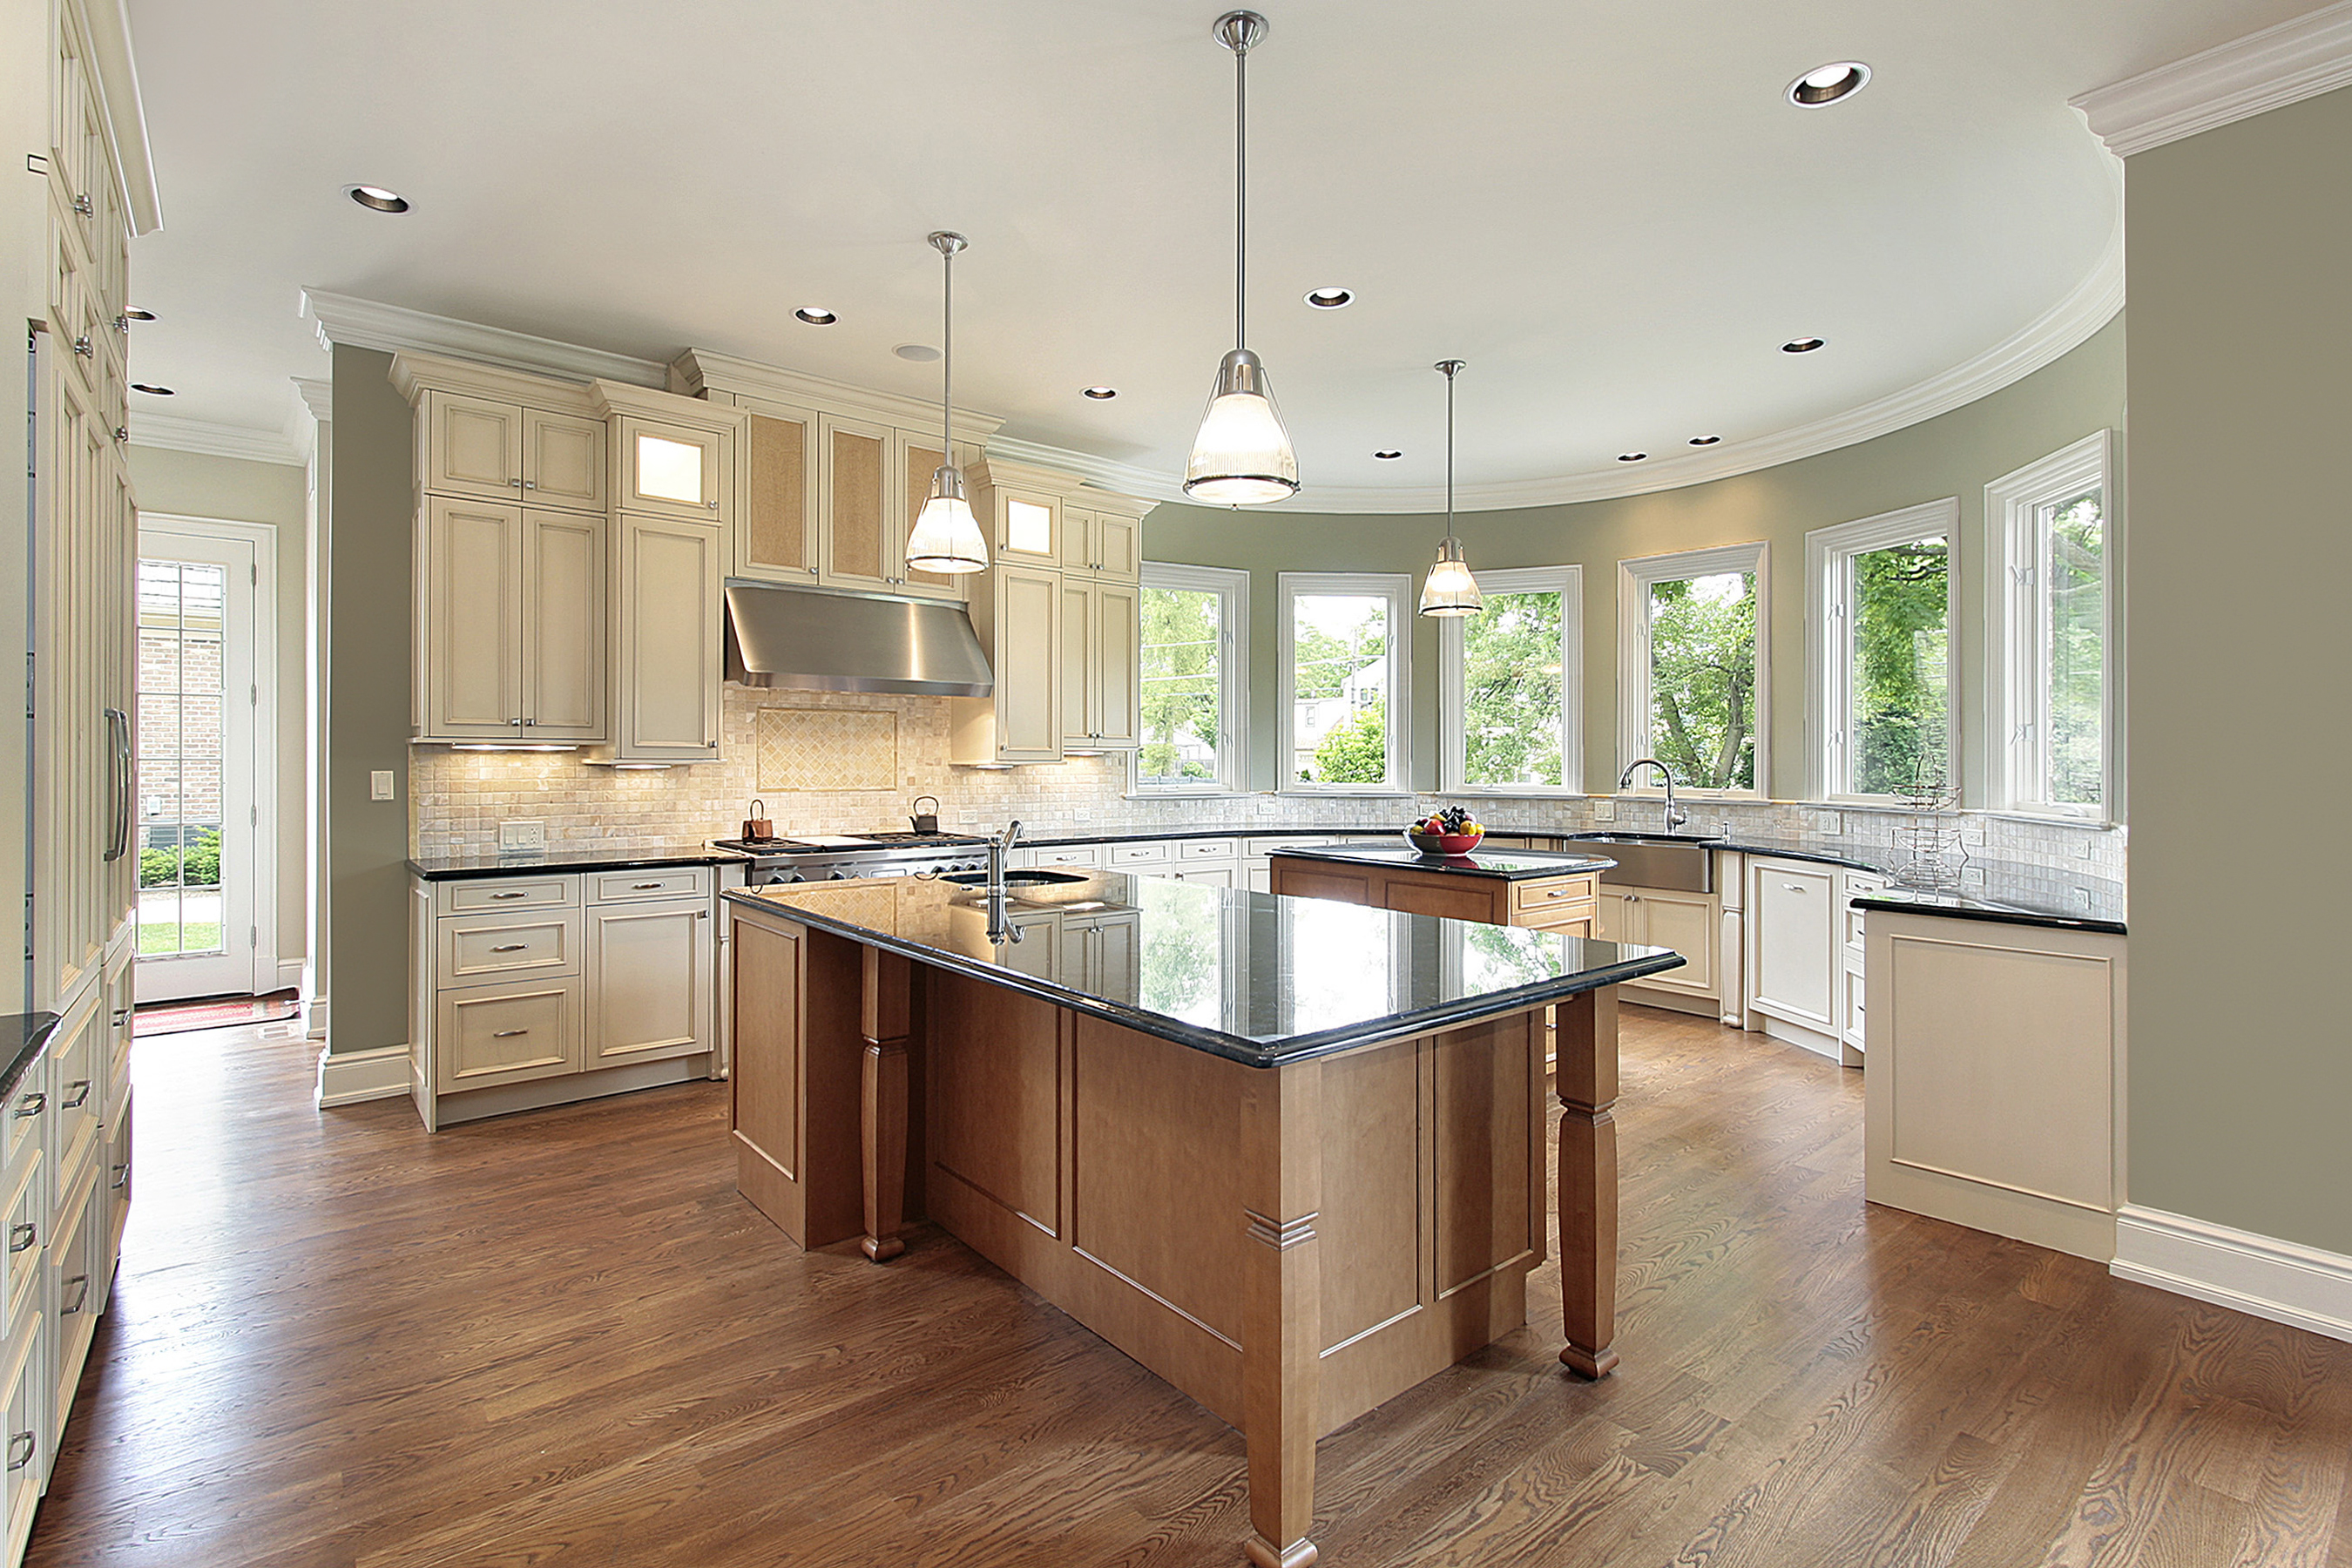 bigstock-Kitchen-With-Curved-Walls-6361491